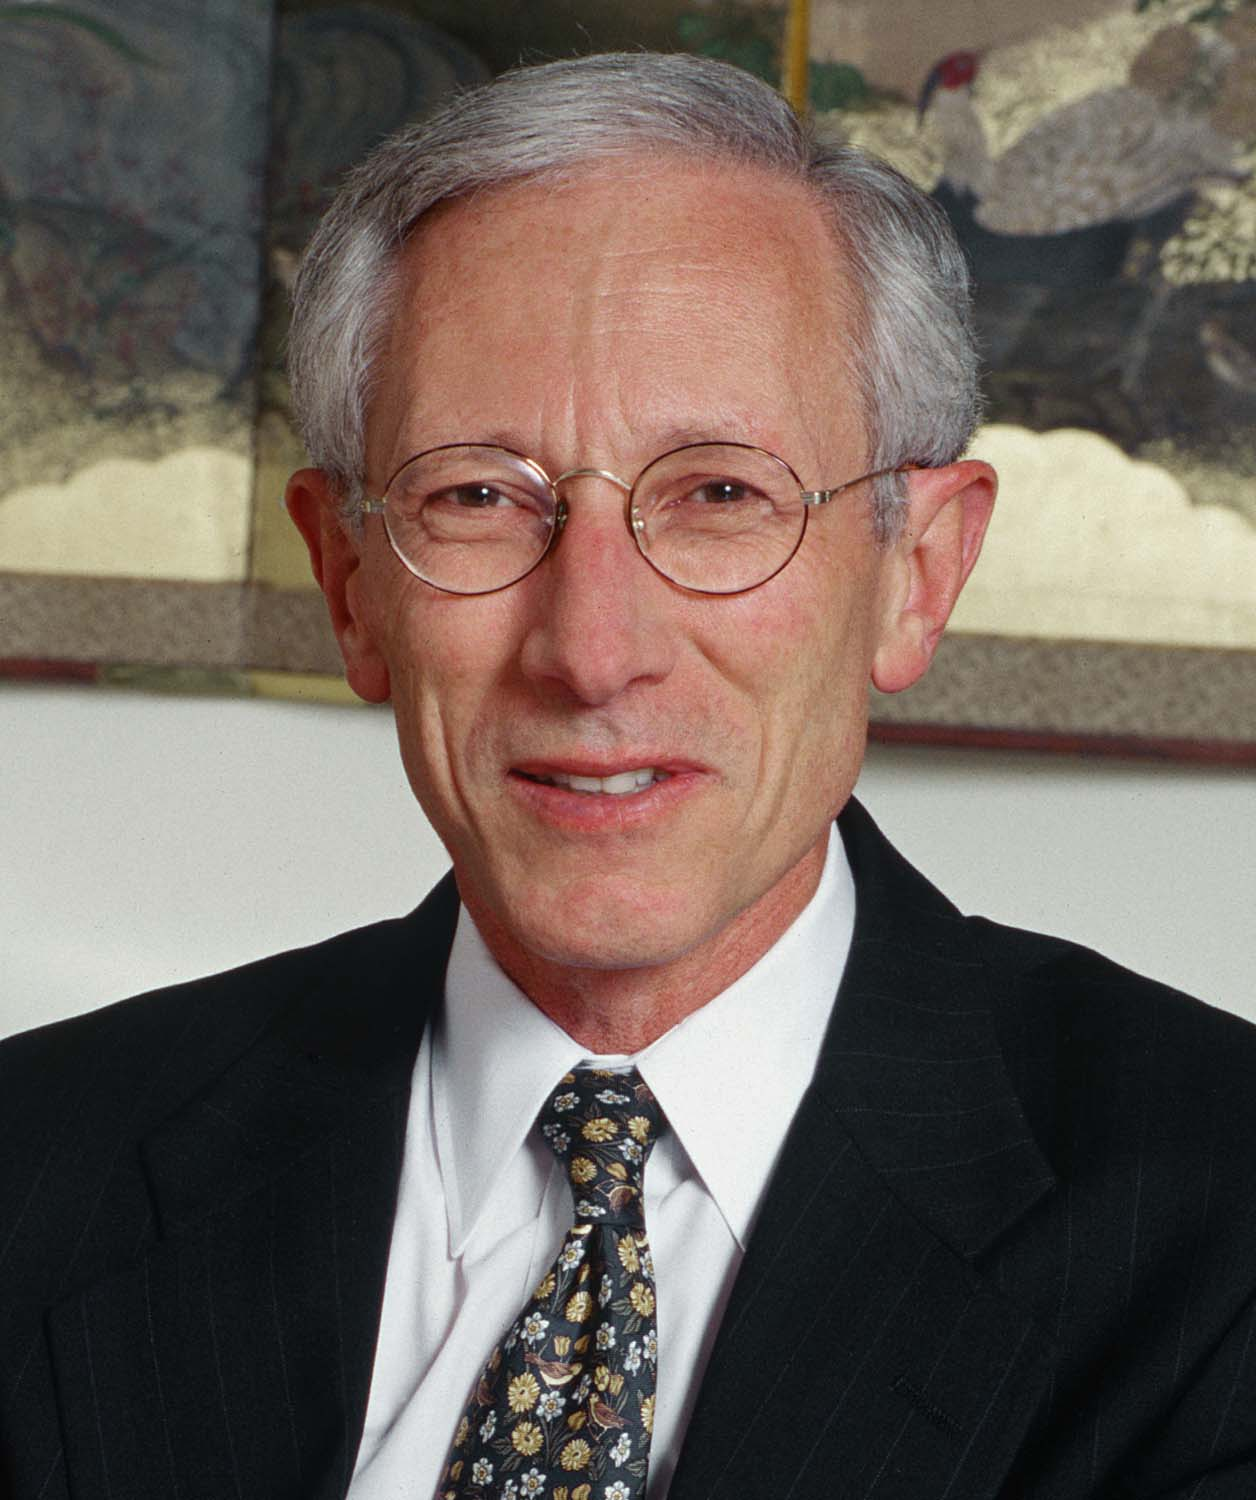 http://upload.wikimedia.org/wikipedia/commons/3/31/Stanley_Fischer.jpg